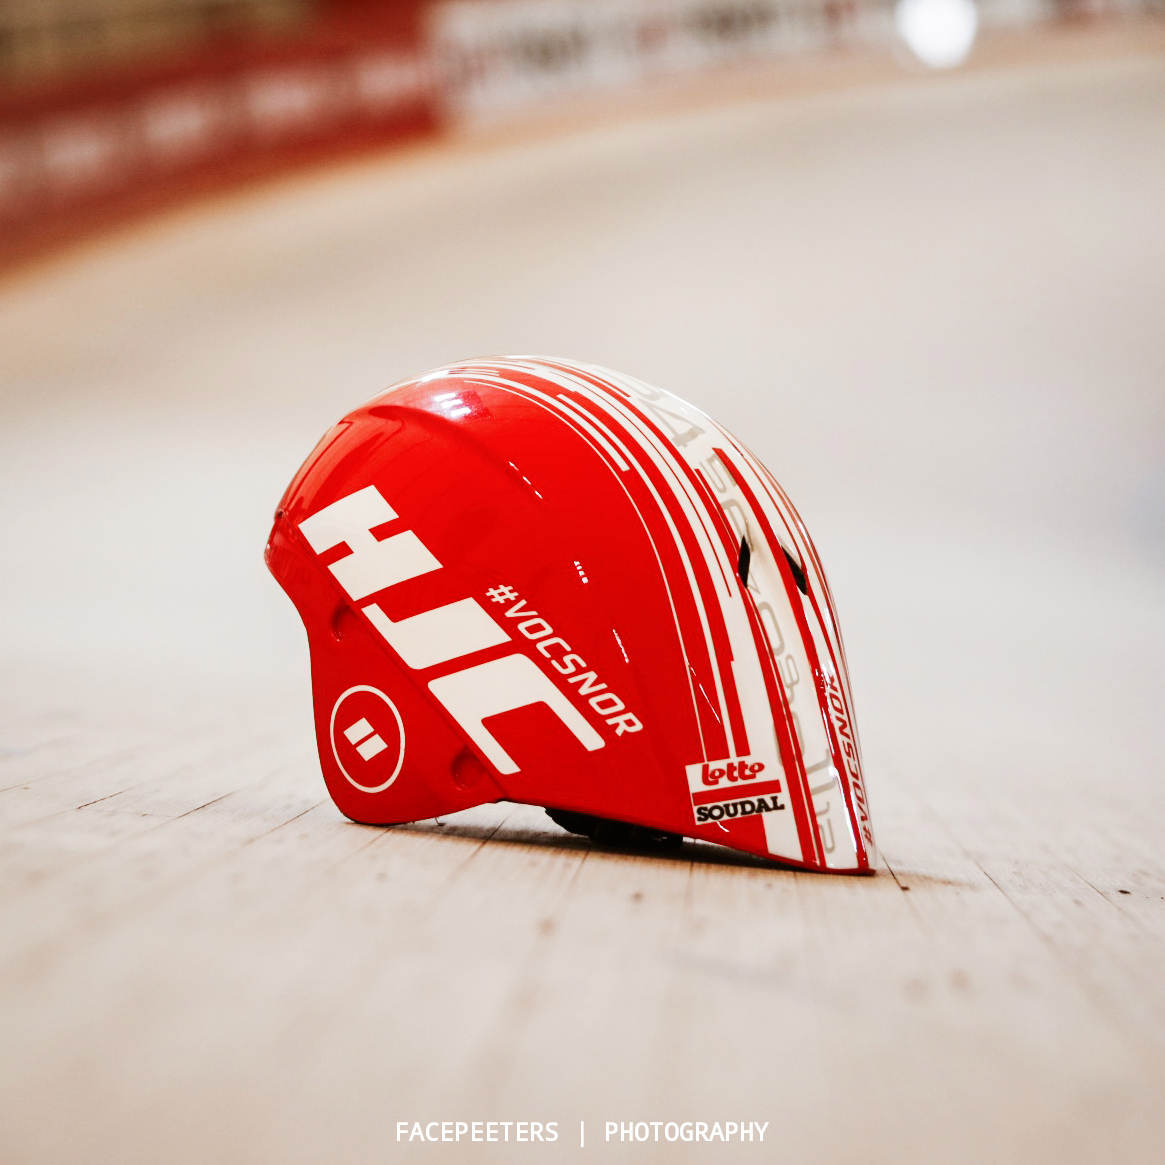 Helmet of Victor Campenaerts for the hour record on the track